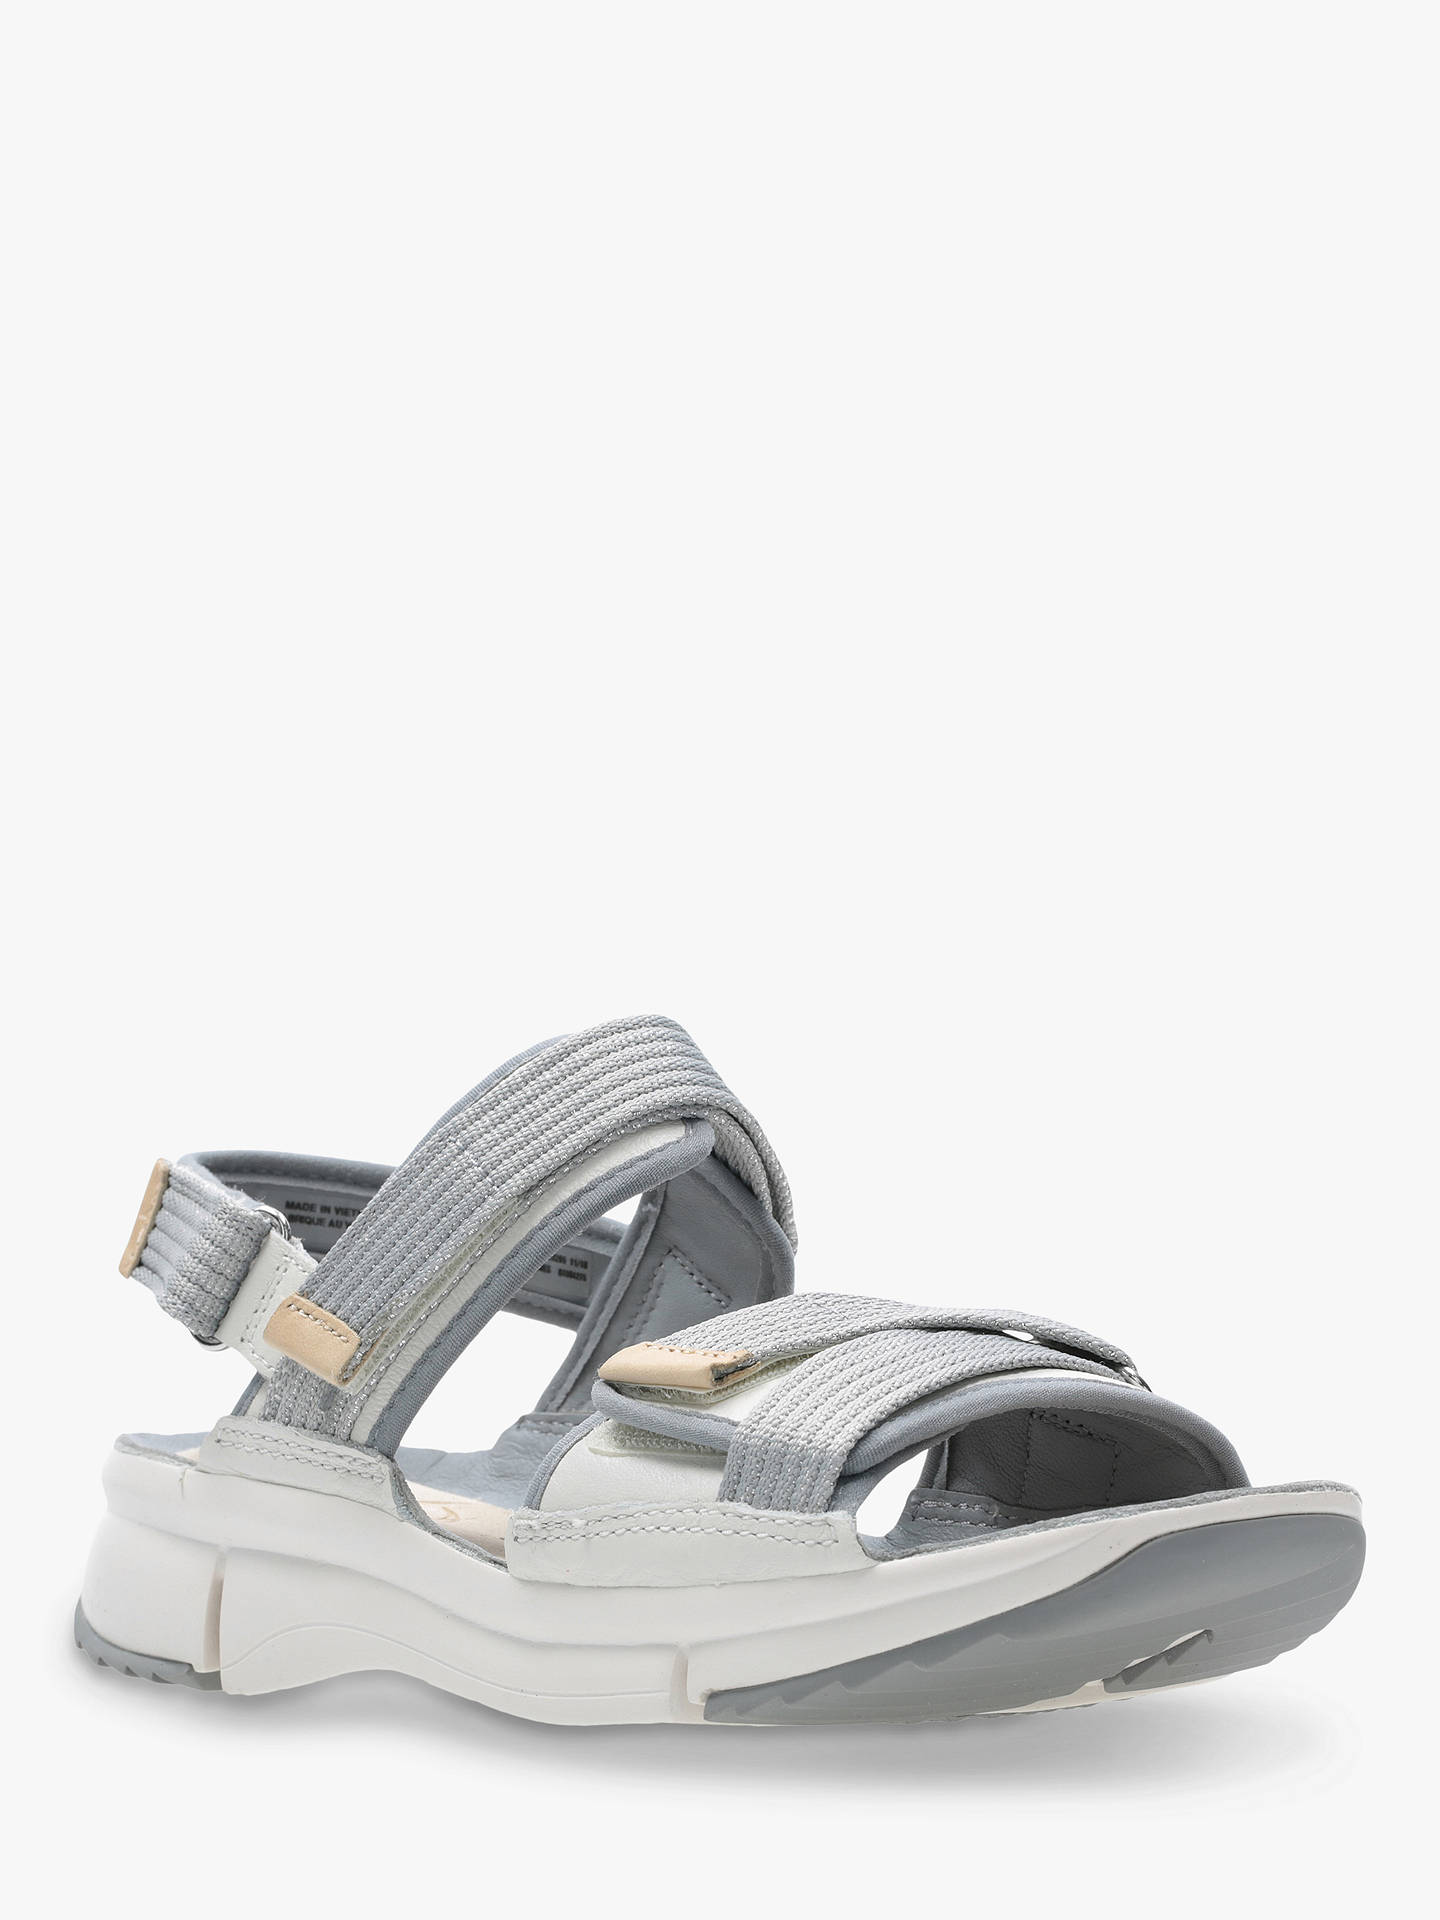 Buy Clarks Tri Walk Strap Sandals, White Combi Leather, 3 Online at johnlewis.com